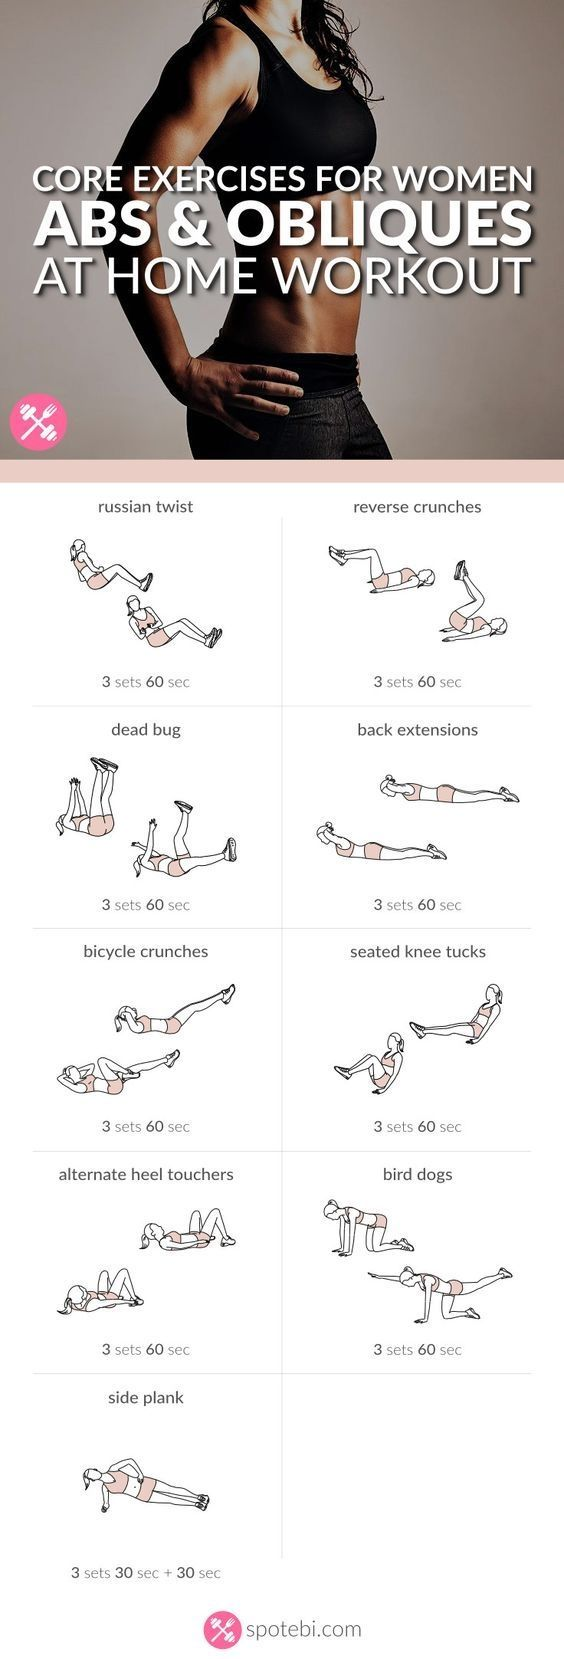 Abs And Oblique WOrkout abs fitness exercise home exercise diy exercise routine working out ab workout 6 pack workout routine exercise routine